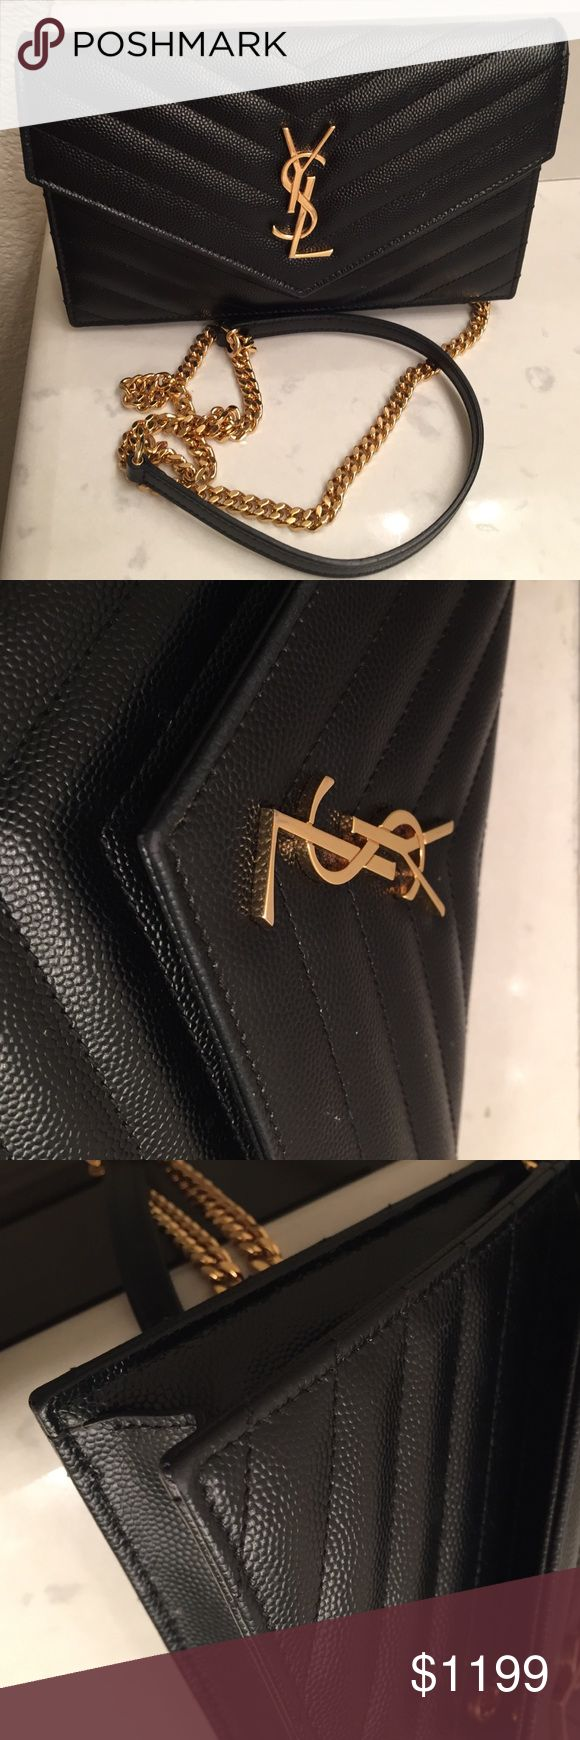 YSL wallet on a chain cross body Additional pictures. Please see original listings for details. no trades. No exchanges. No refunds. No pay pal.  Yves Saint Laurent Bags Crossbody Bags